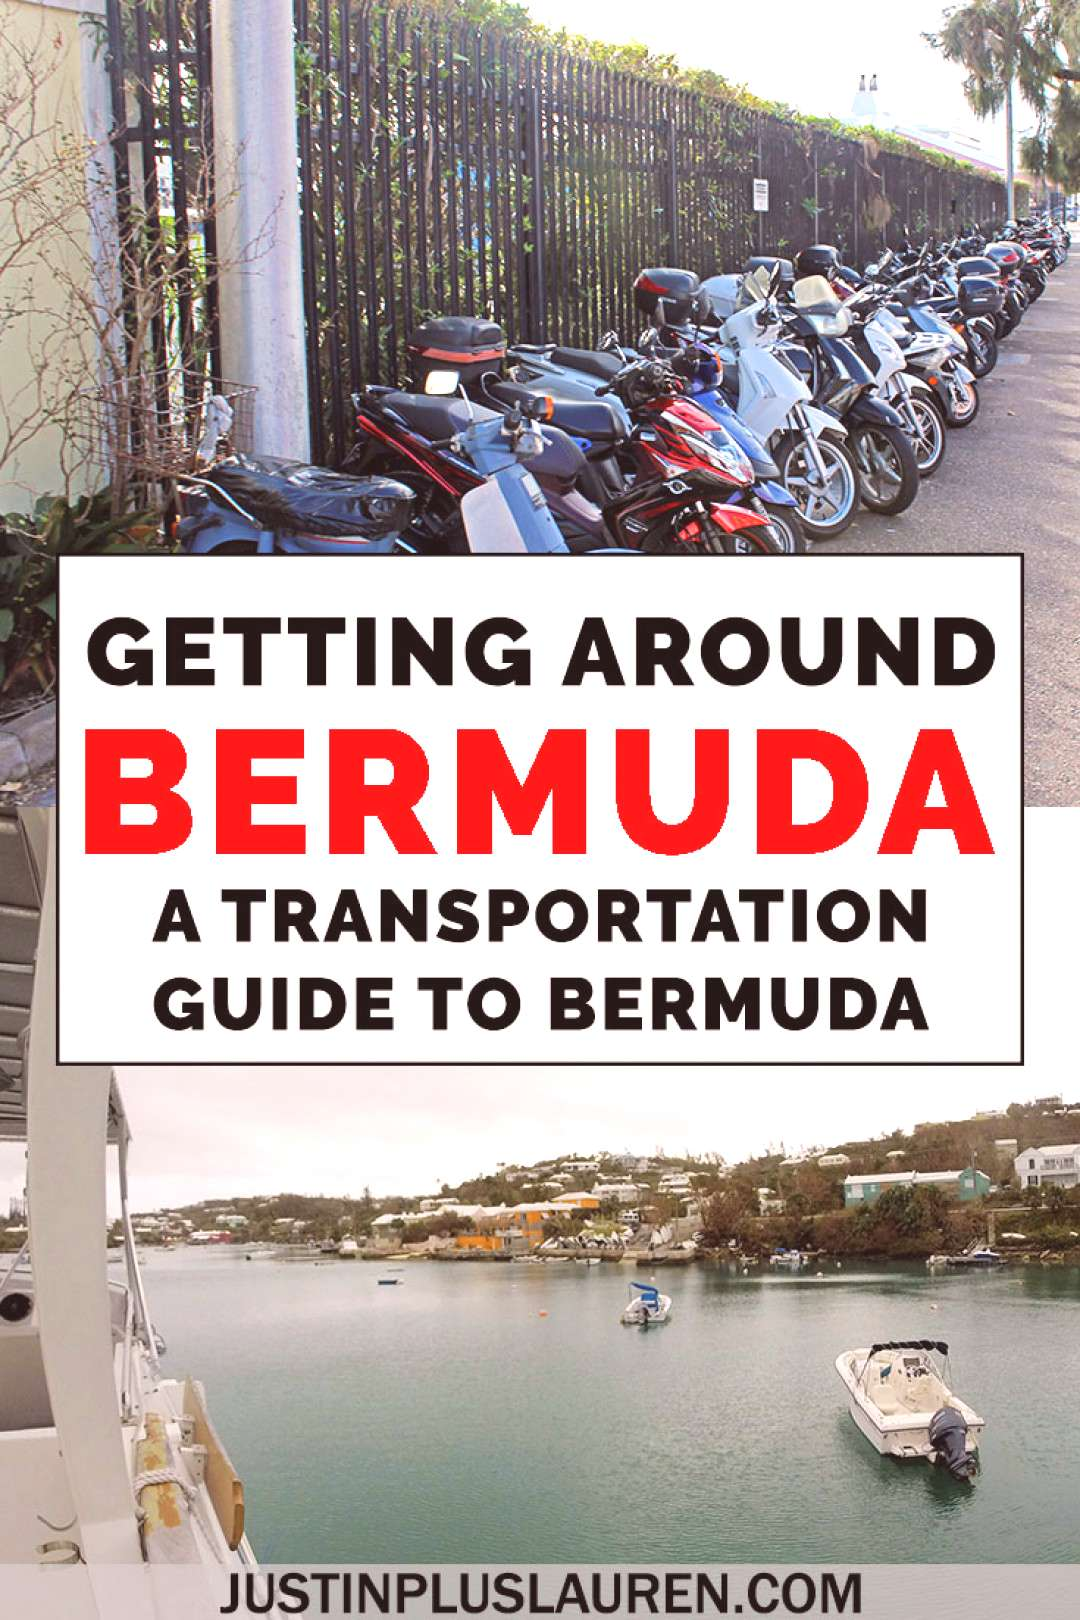 How can you get around Bermuda when tourists arent allowed to rent cars? There are so many transpo